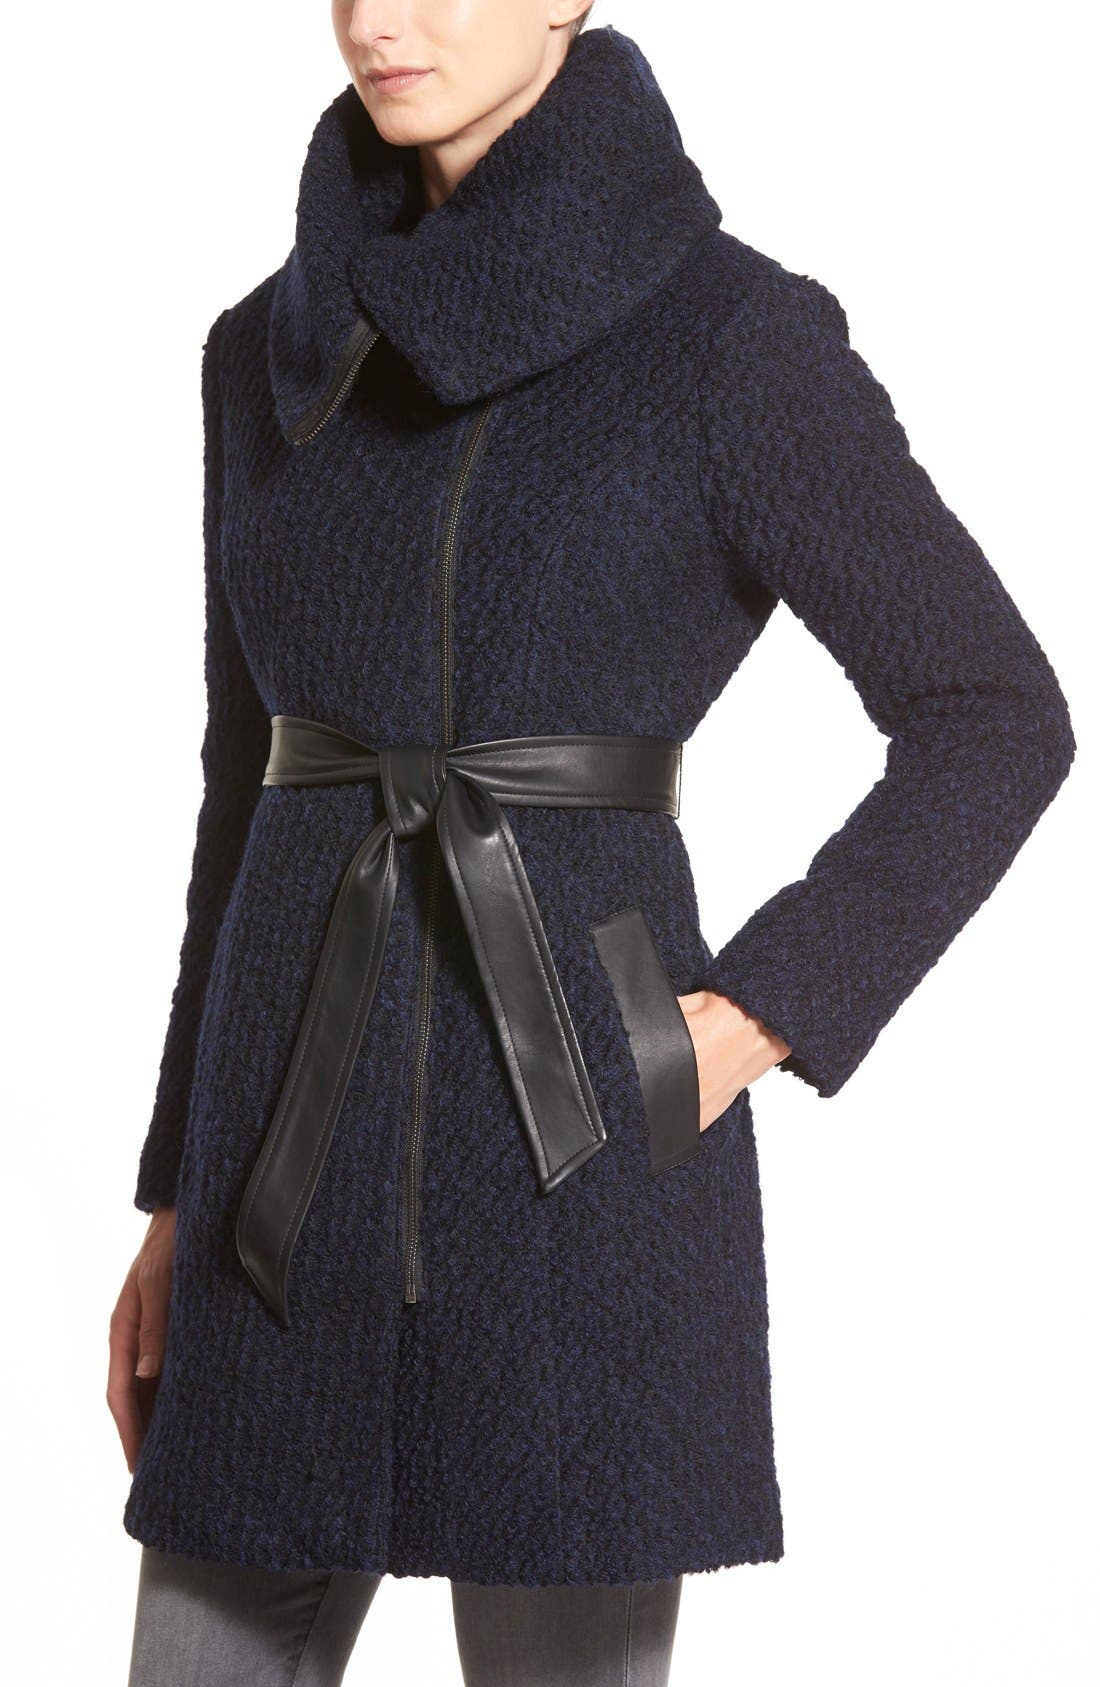 Belted Asymmetrical Bouclé Wool Blend Coat,                             Alternate thumbnail 3, color,                             Black/ Navy